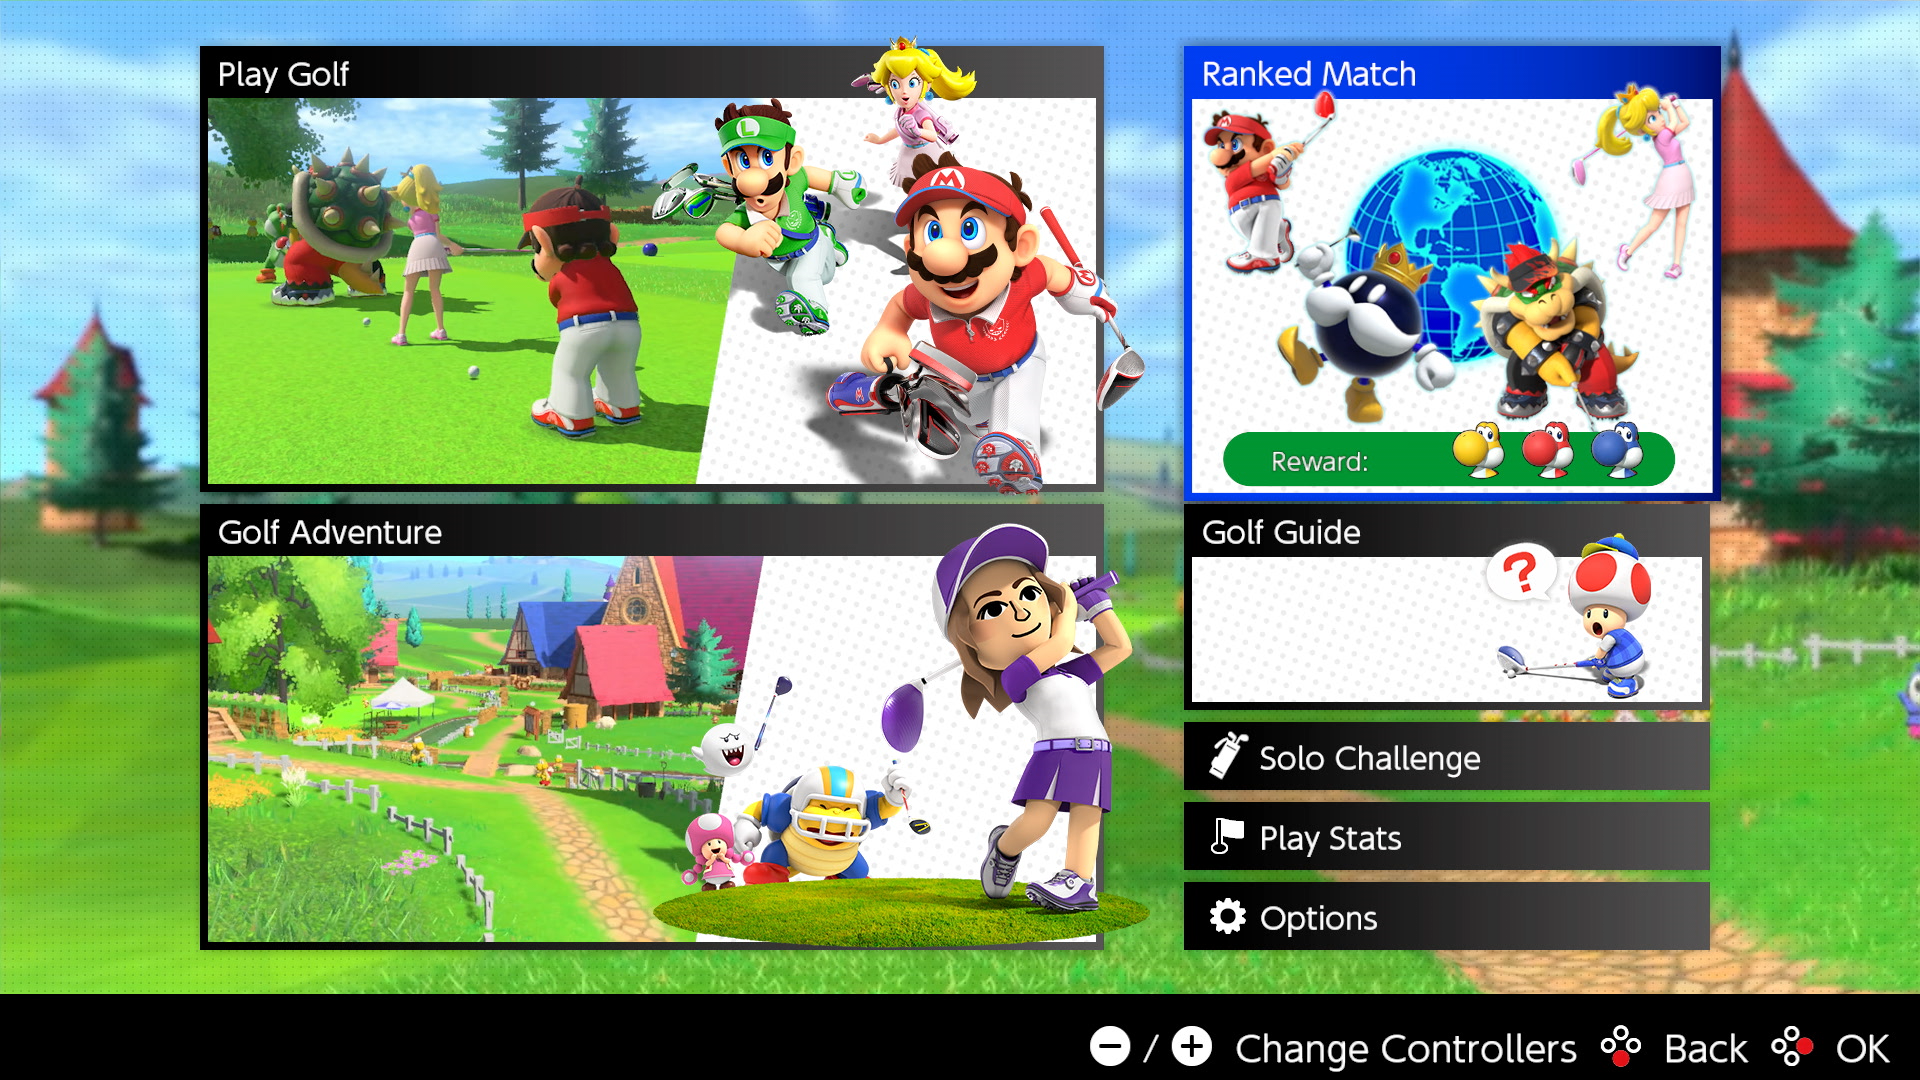 CI_NSwitch_MarioGolfSR_Screen_Ranked_enGB.png